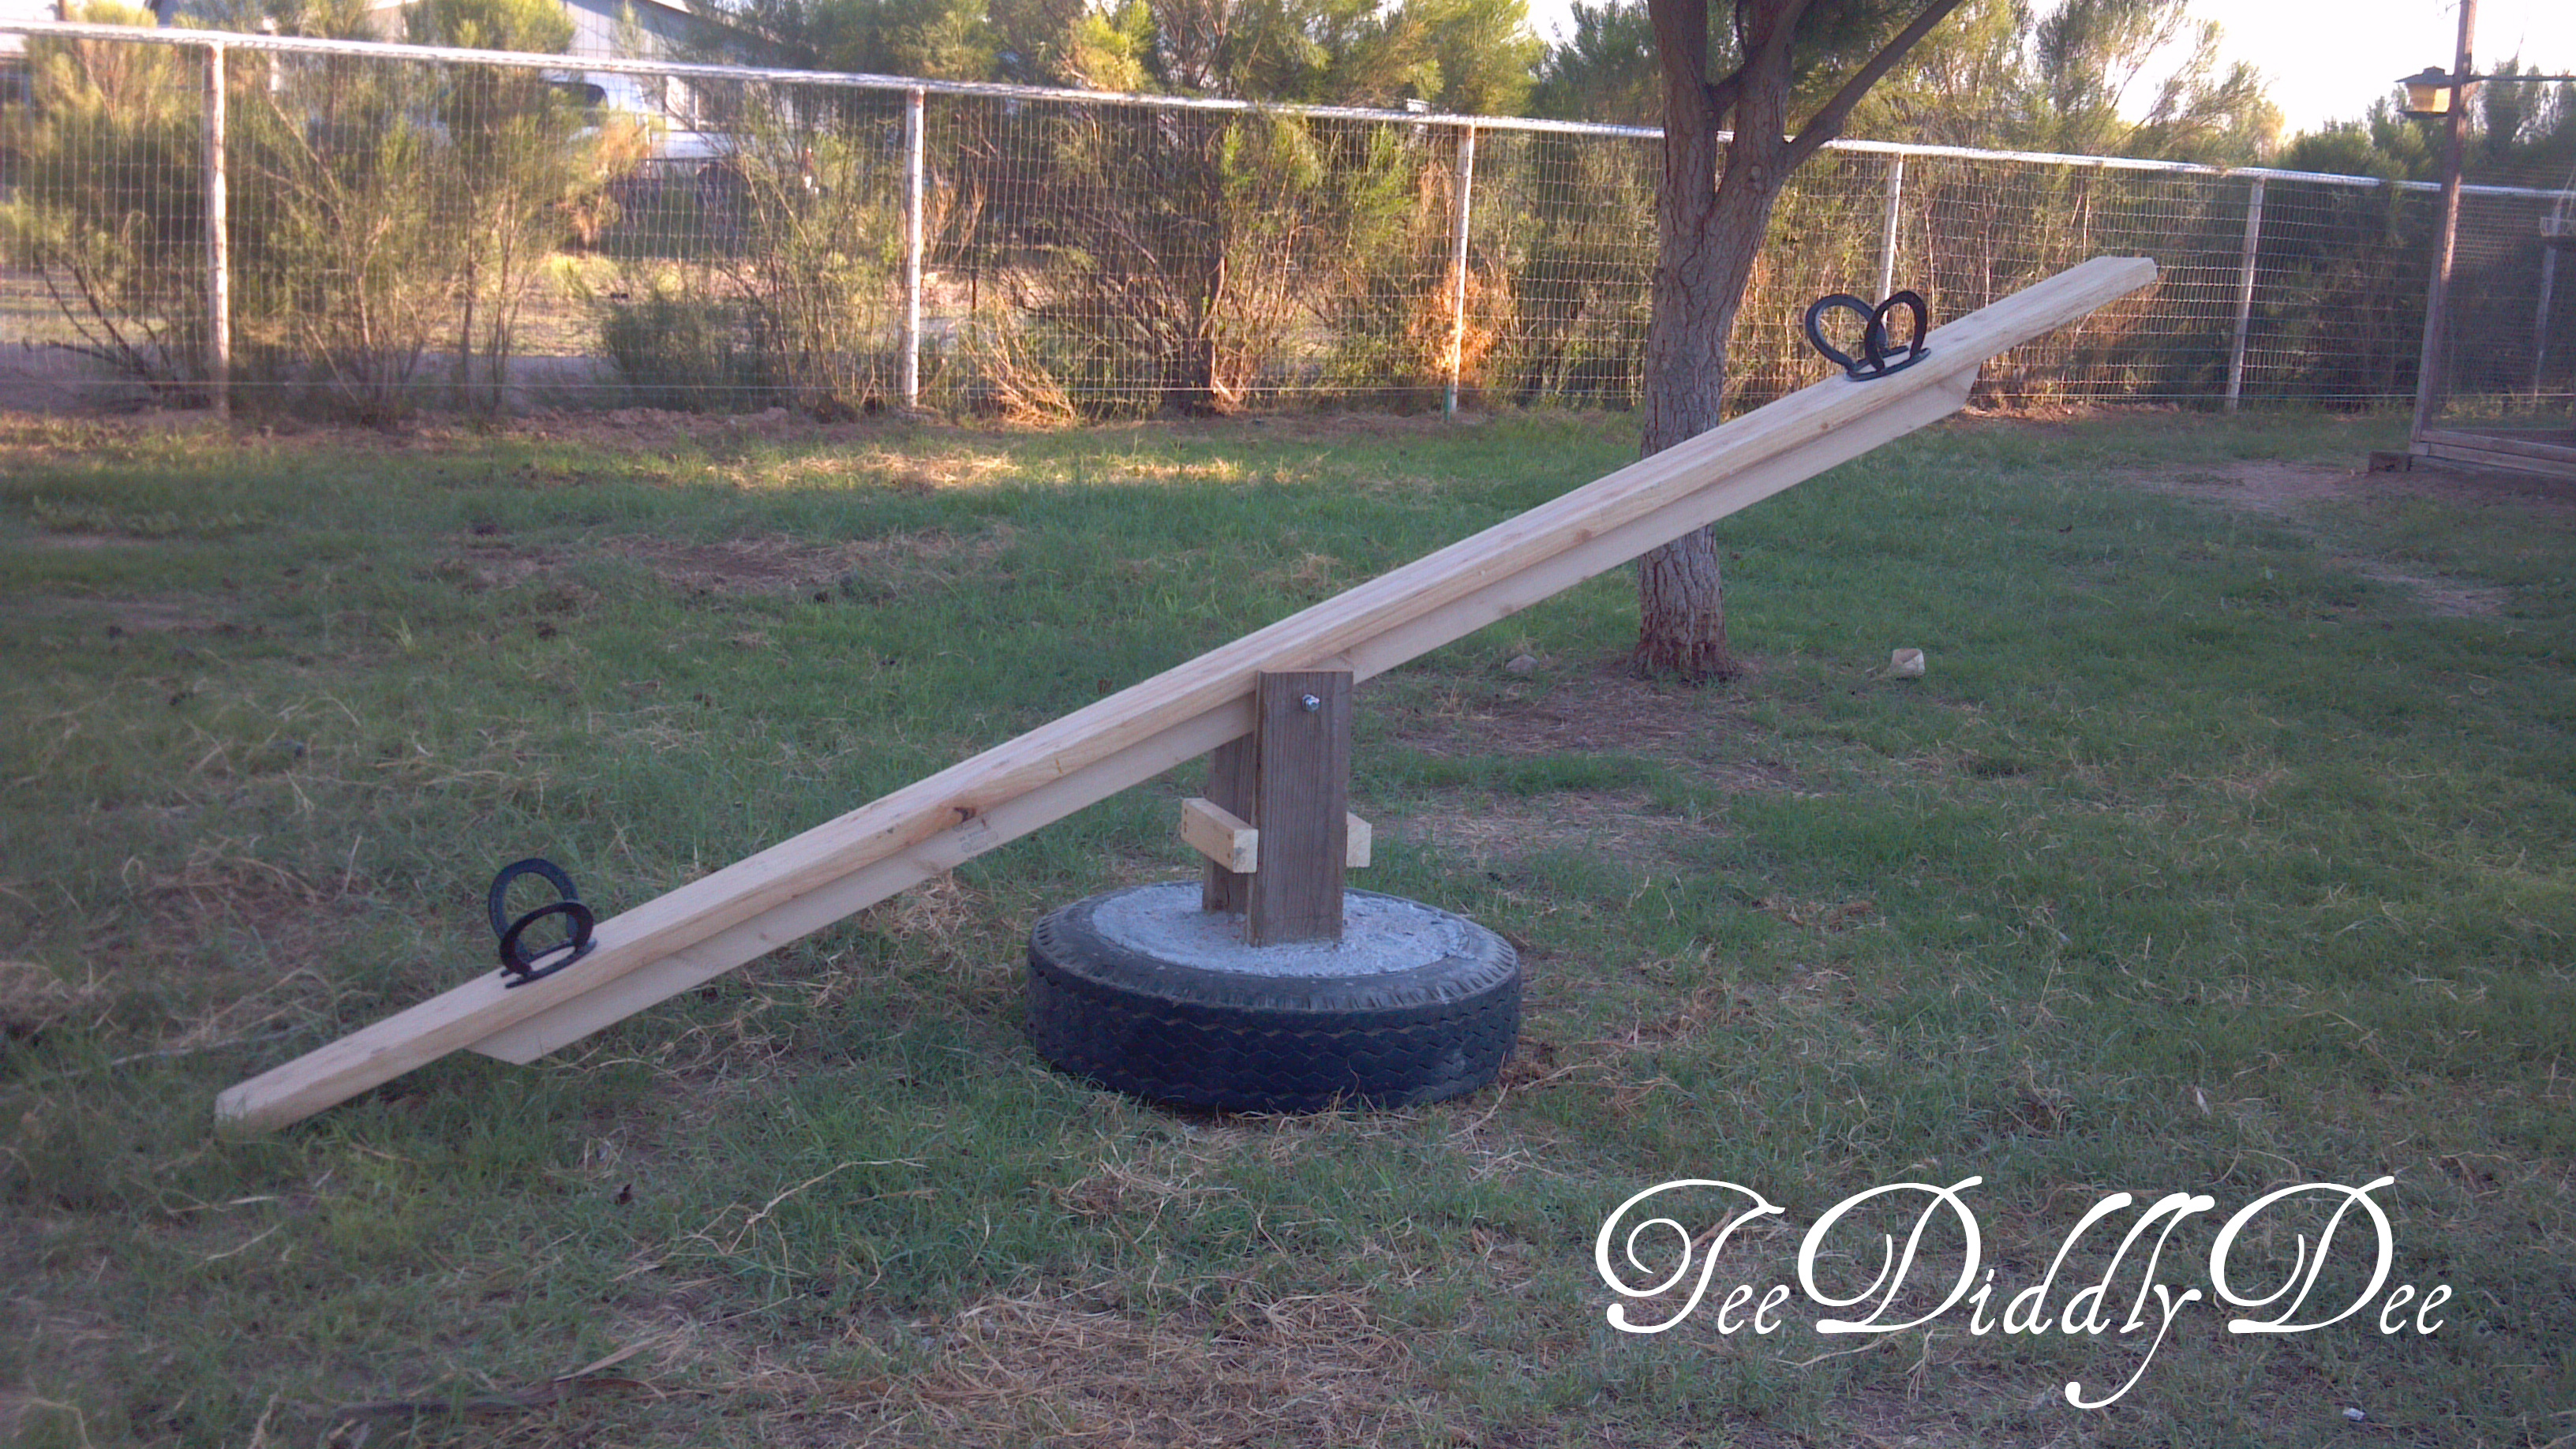 How to build a teeter totter or see saw out of old - Columpio de madera ...